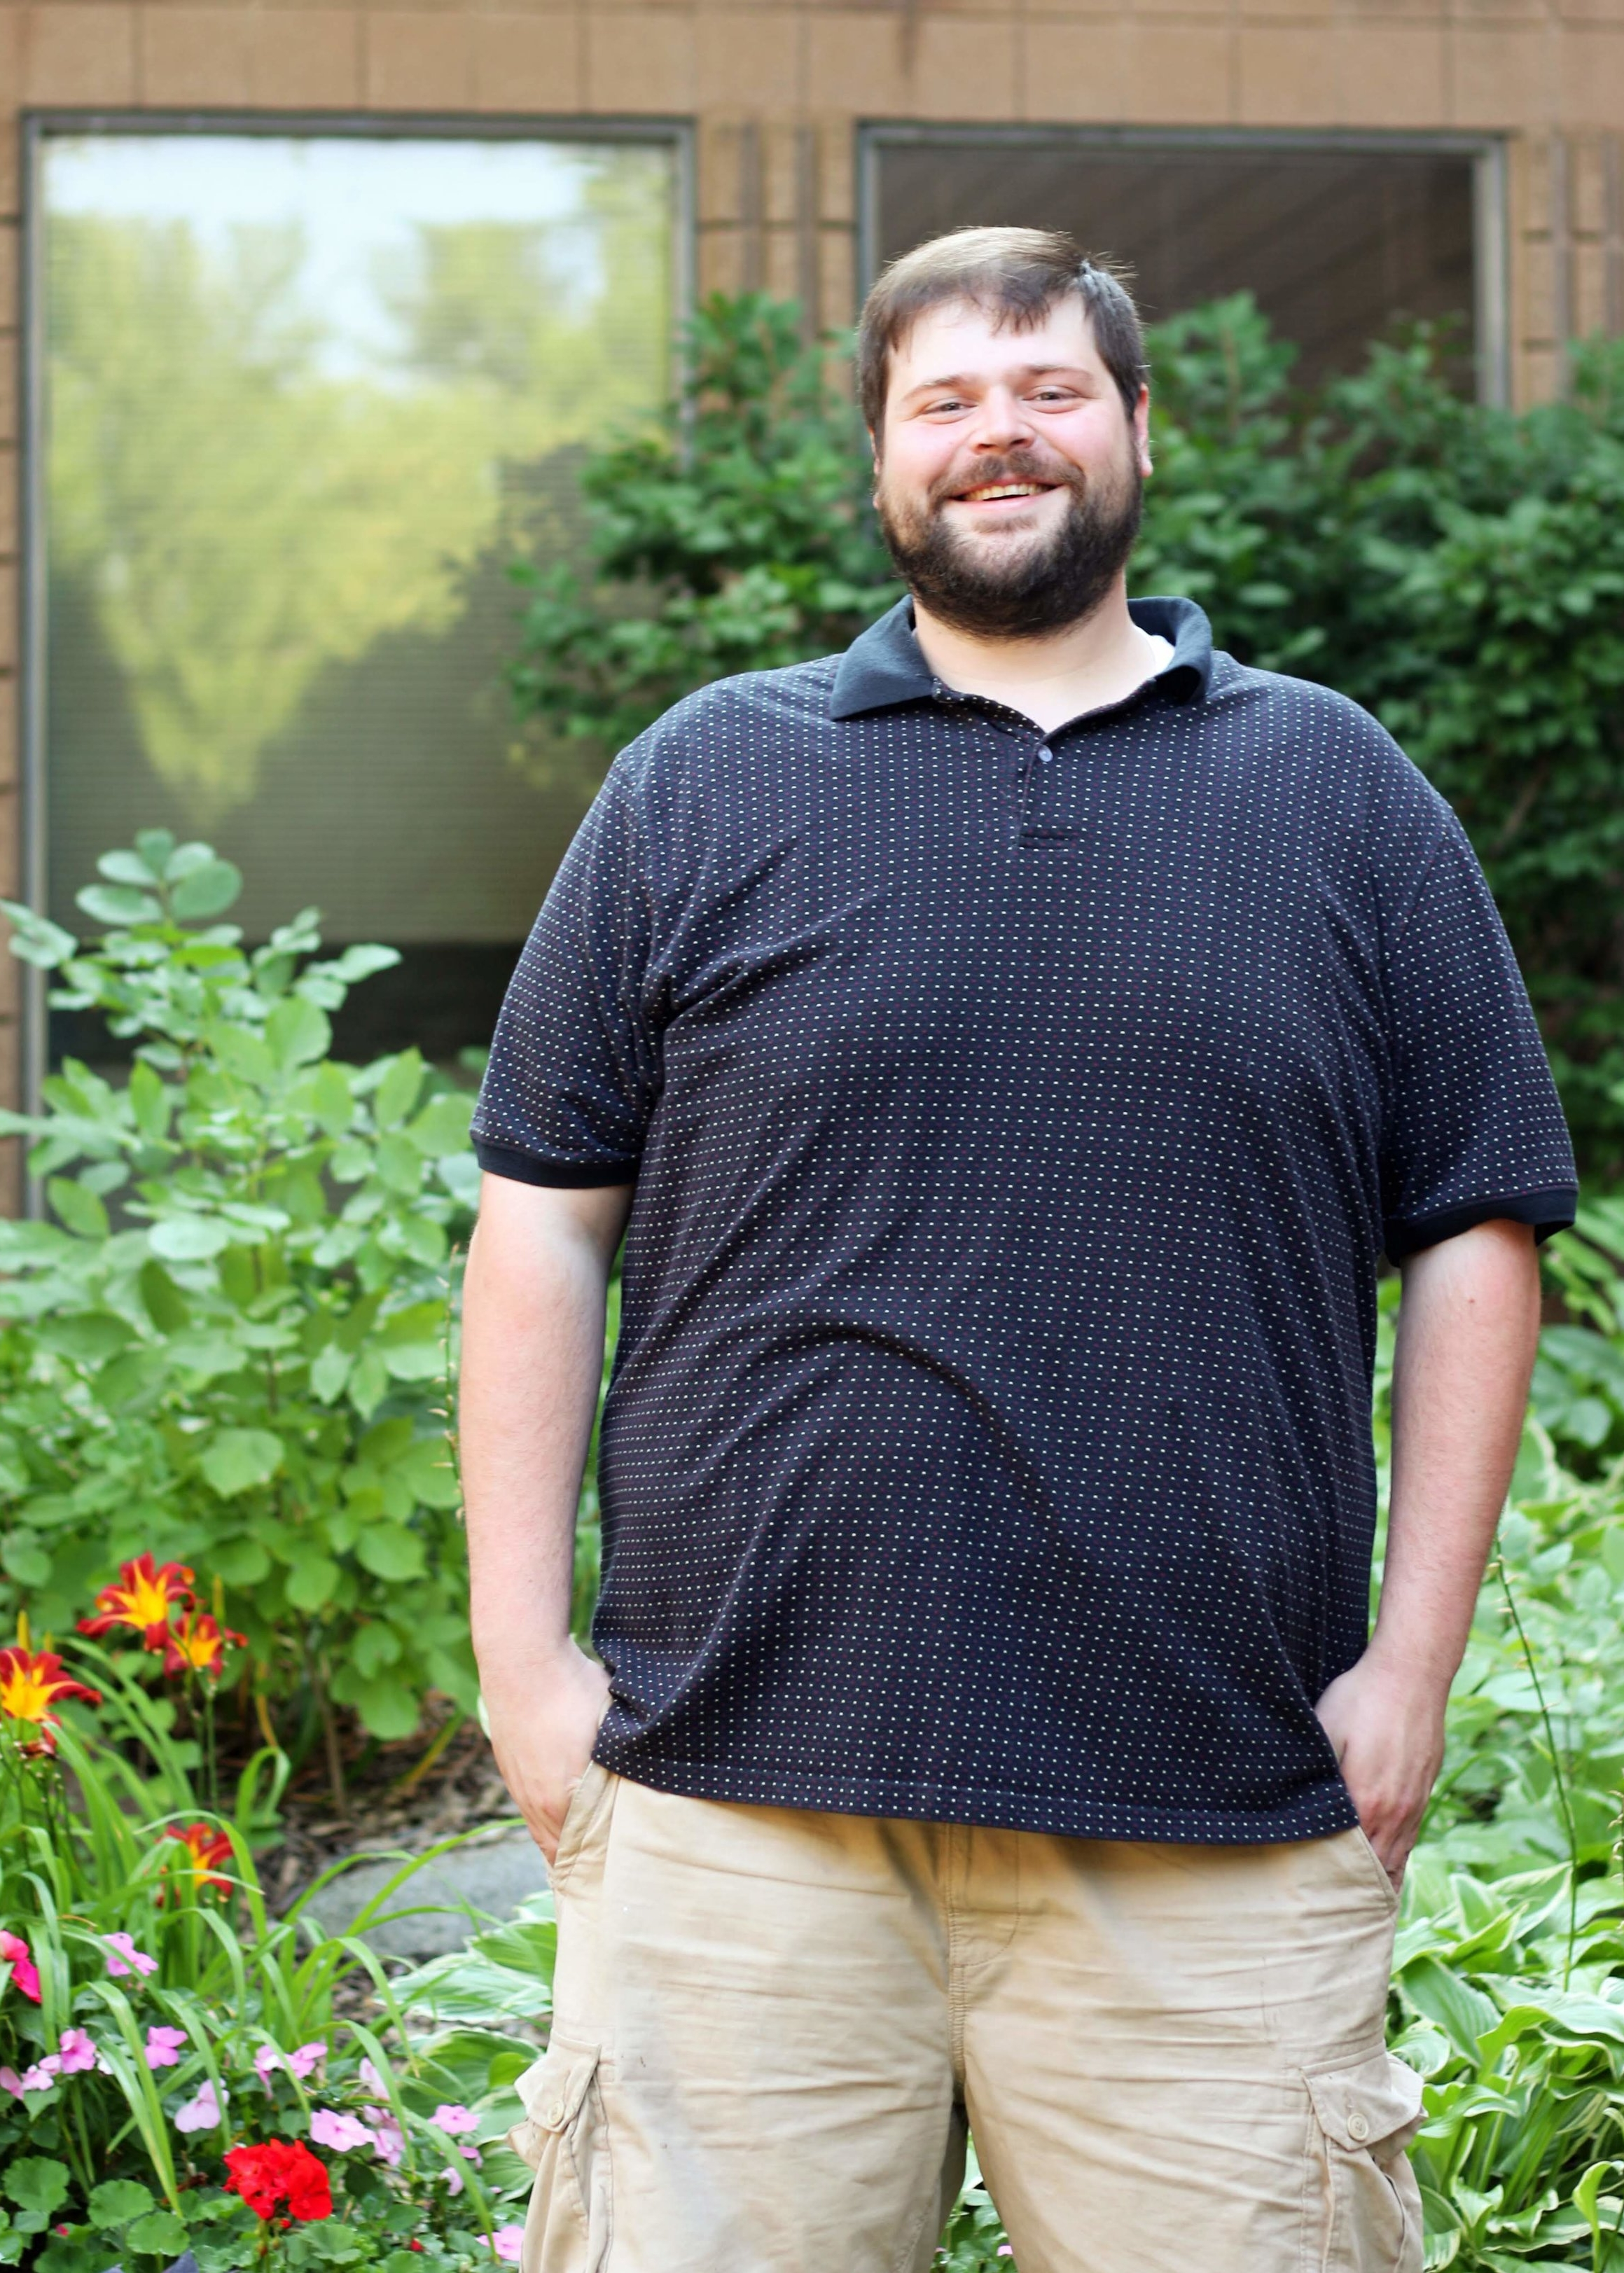 Jake Kamp - Facility ManagerJake Kamp has attended Calvary his whole life. In the fall of 2007, while attending college at St. Mary's University of Minnesota, Jake started working on the Calvary facilities crew. In April of 2018 he became the facilities manager. If you have any questions about the facilities - renting a room, fixing something, moving something - talk to Jake. In his free time Jake enjoys hunting, fishing, video games, building computers, and pretty much anything sci-fi or fantasy related!jake.kamp.calvarycrc@gmail.com952-831-6264